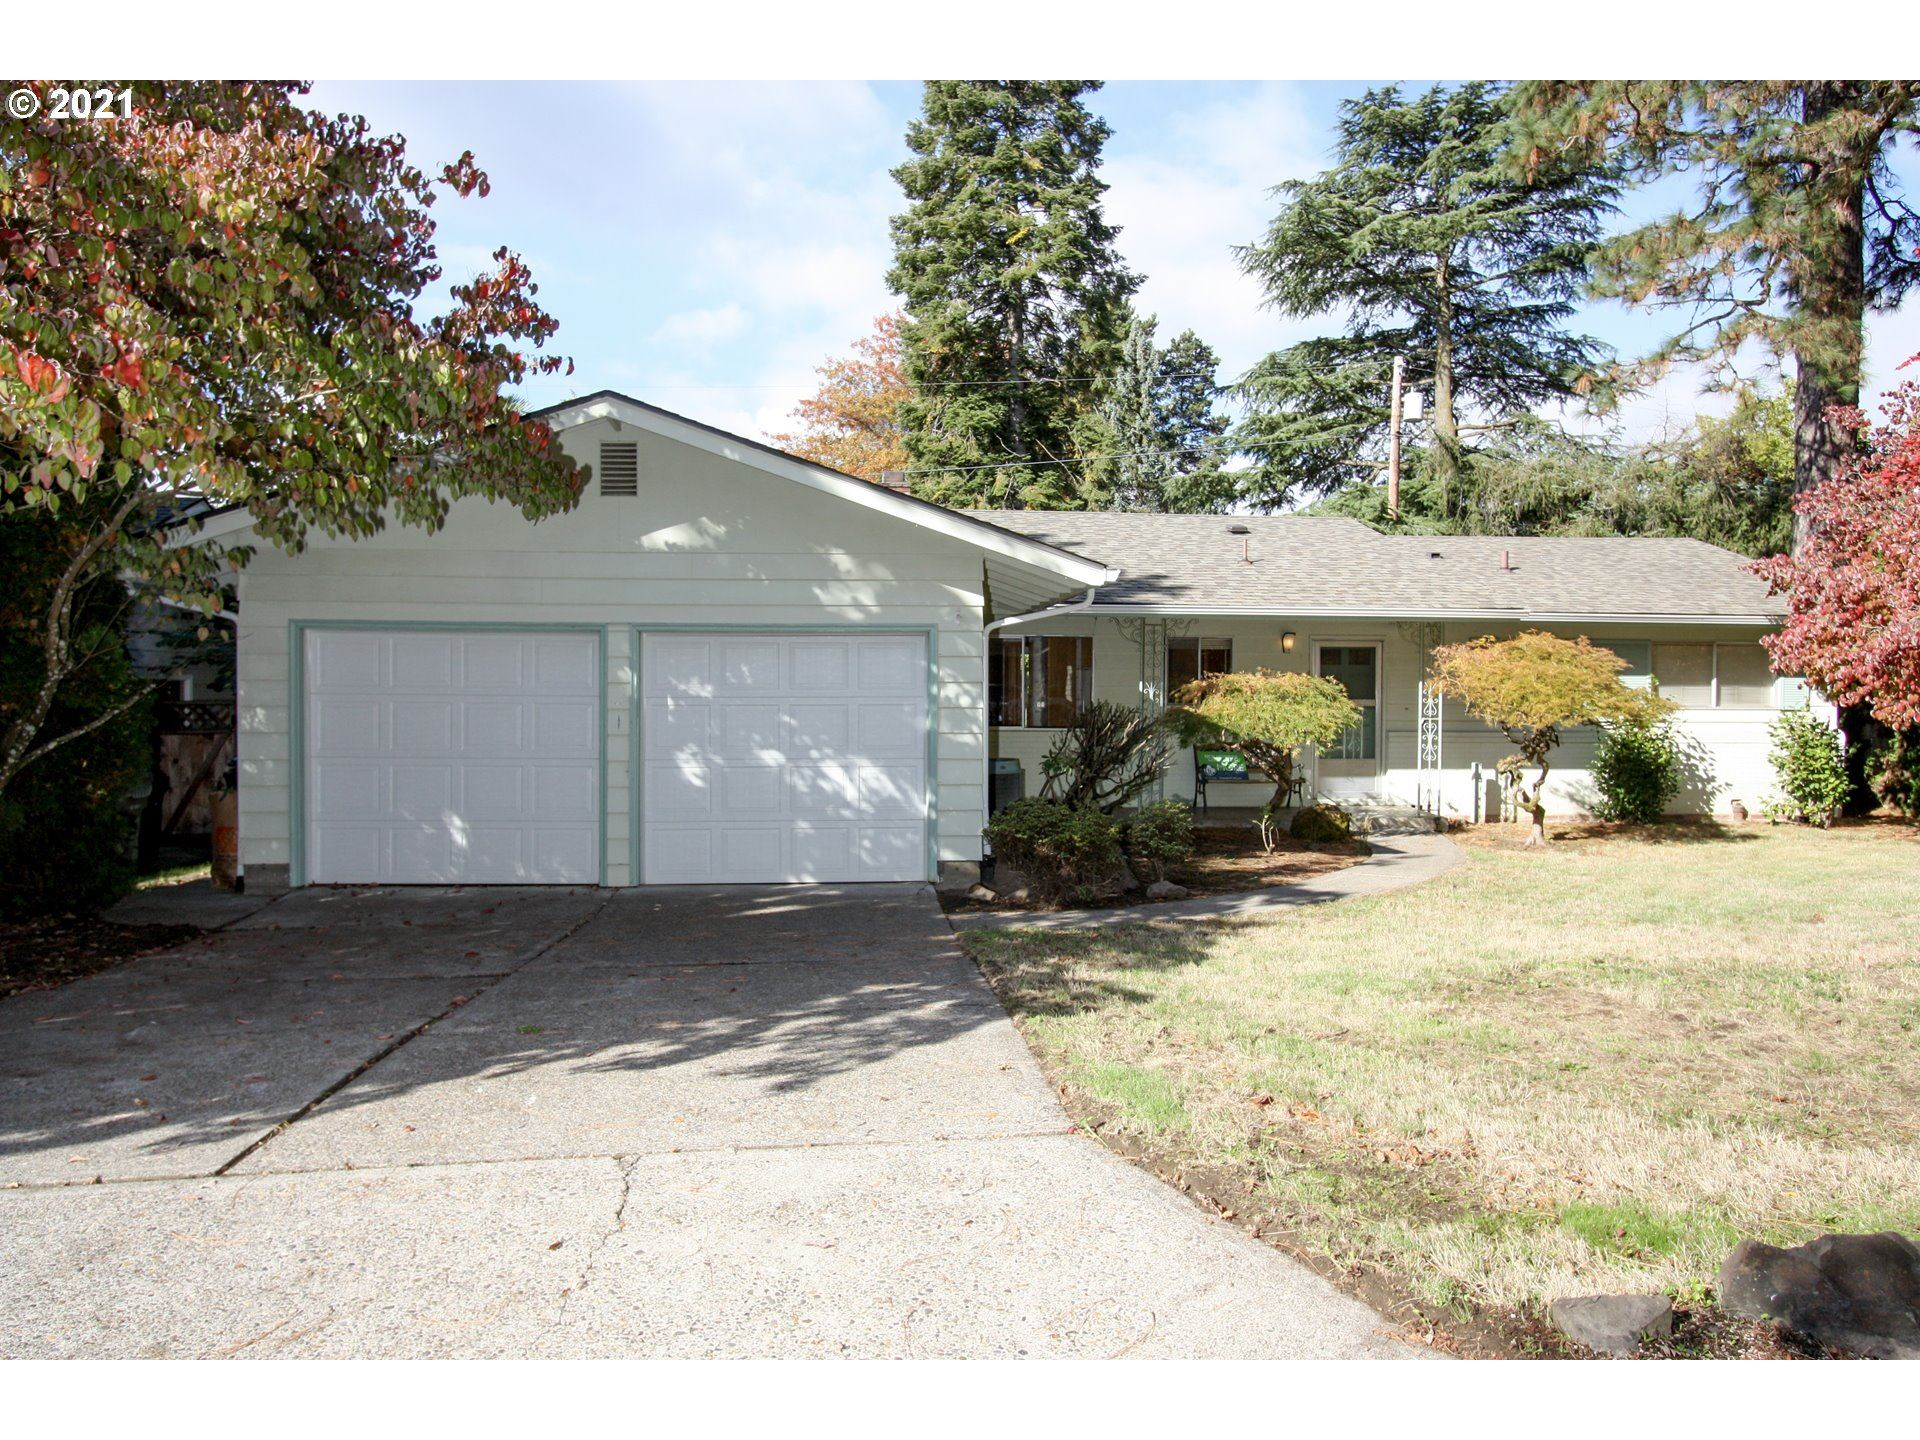 1395 NW 133RD AVE, Portland, OR 97229 - MLS#: 21356839